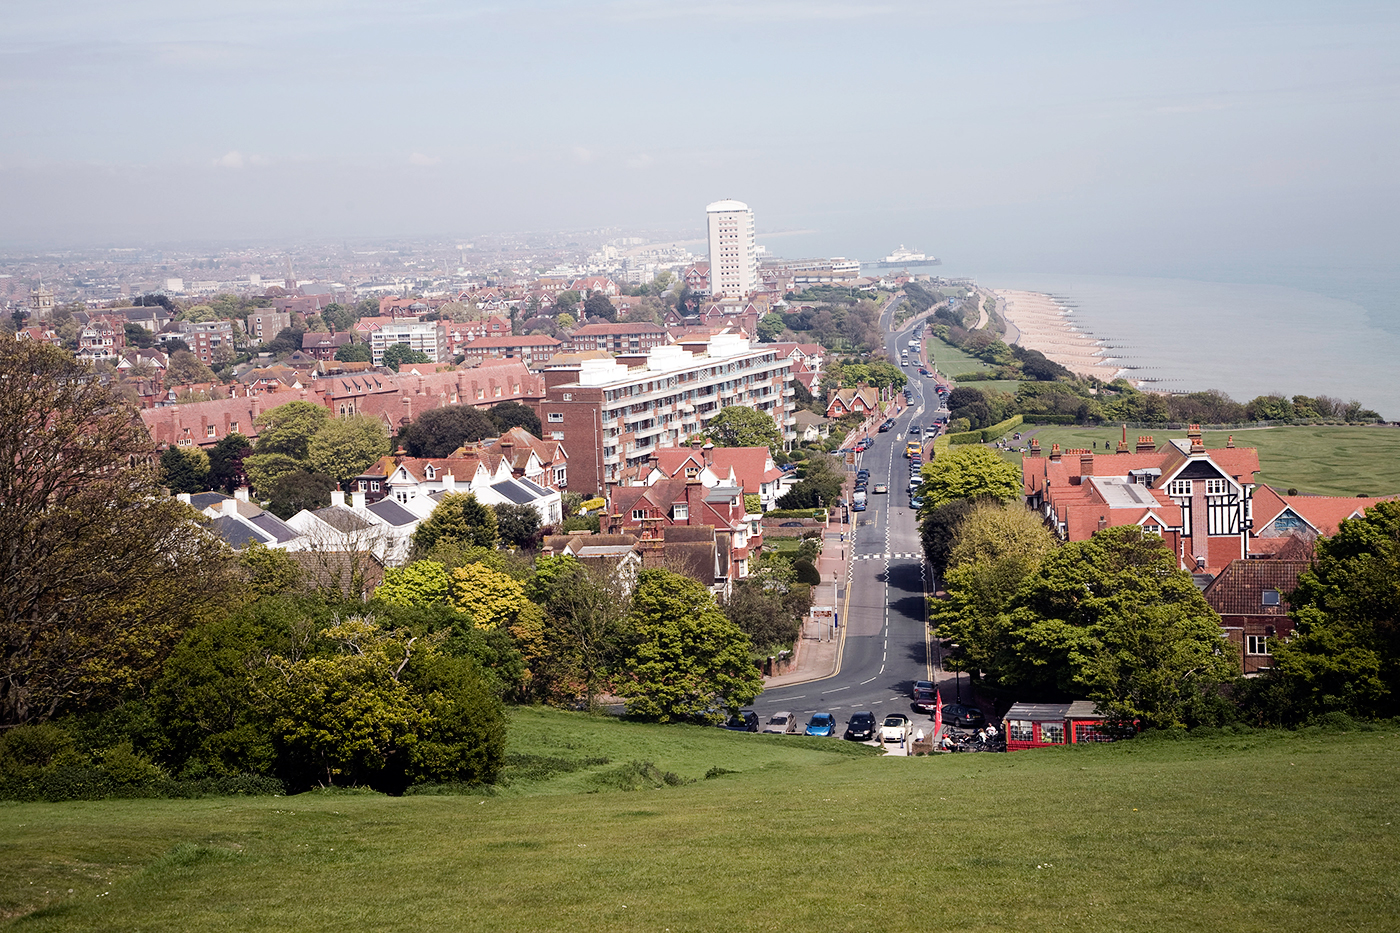 The town and beach of Eastbourne